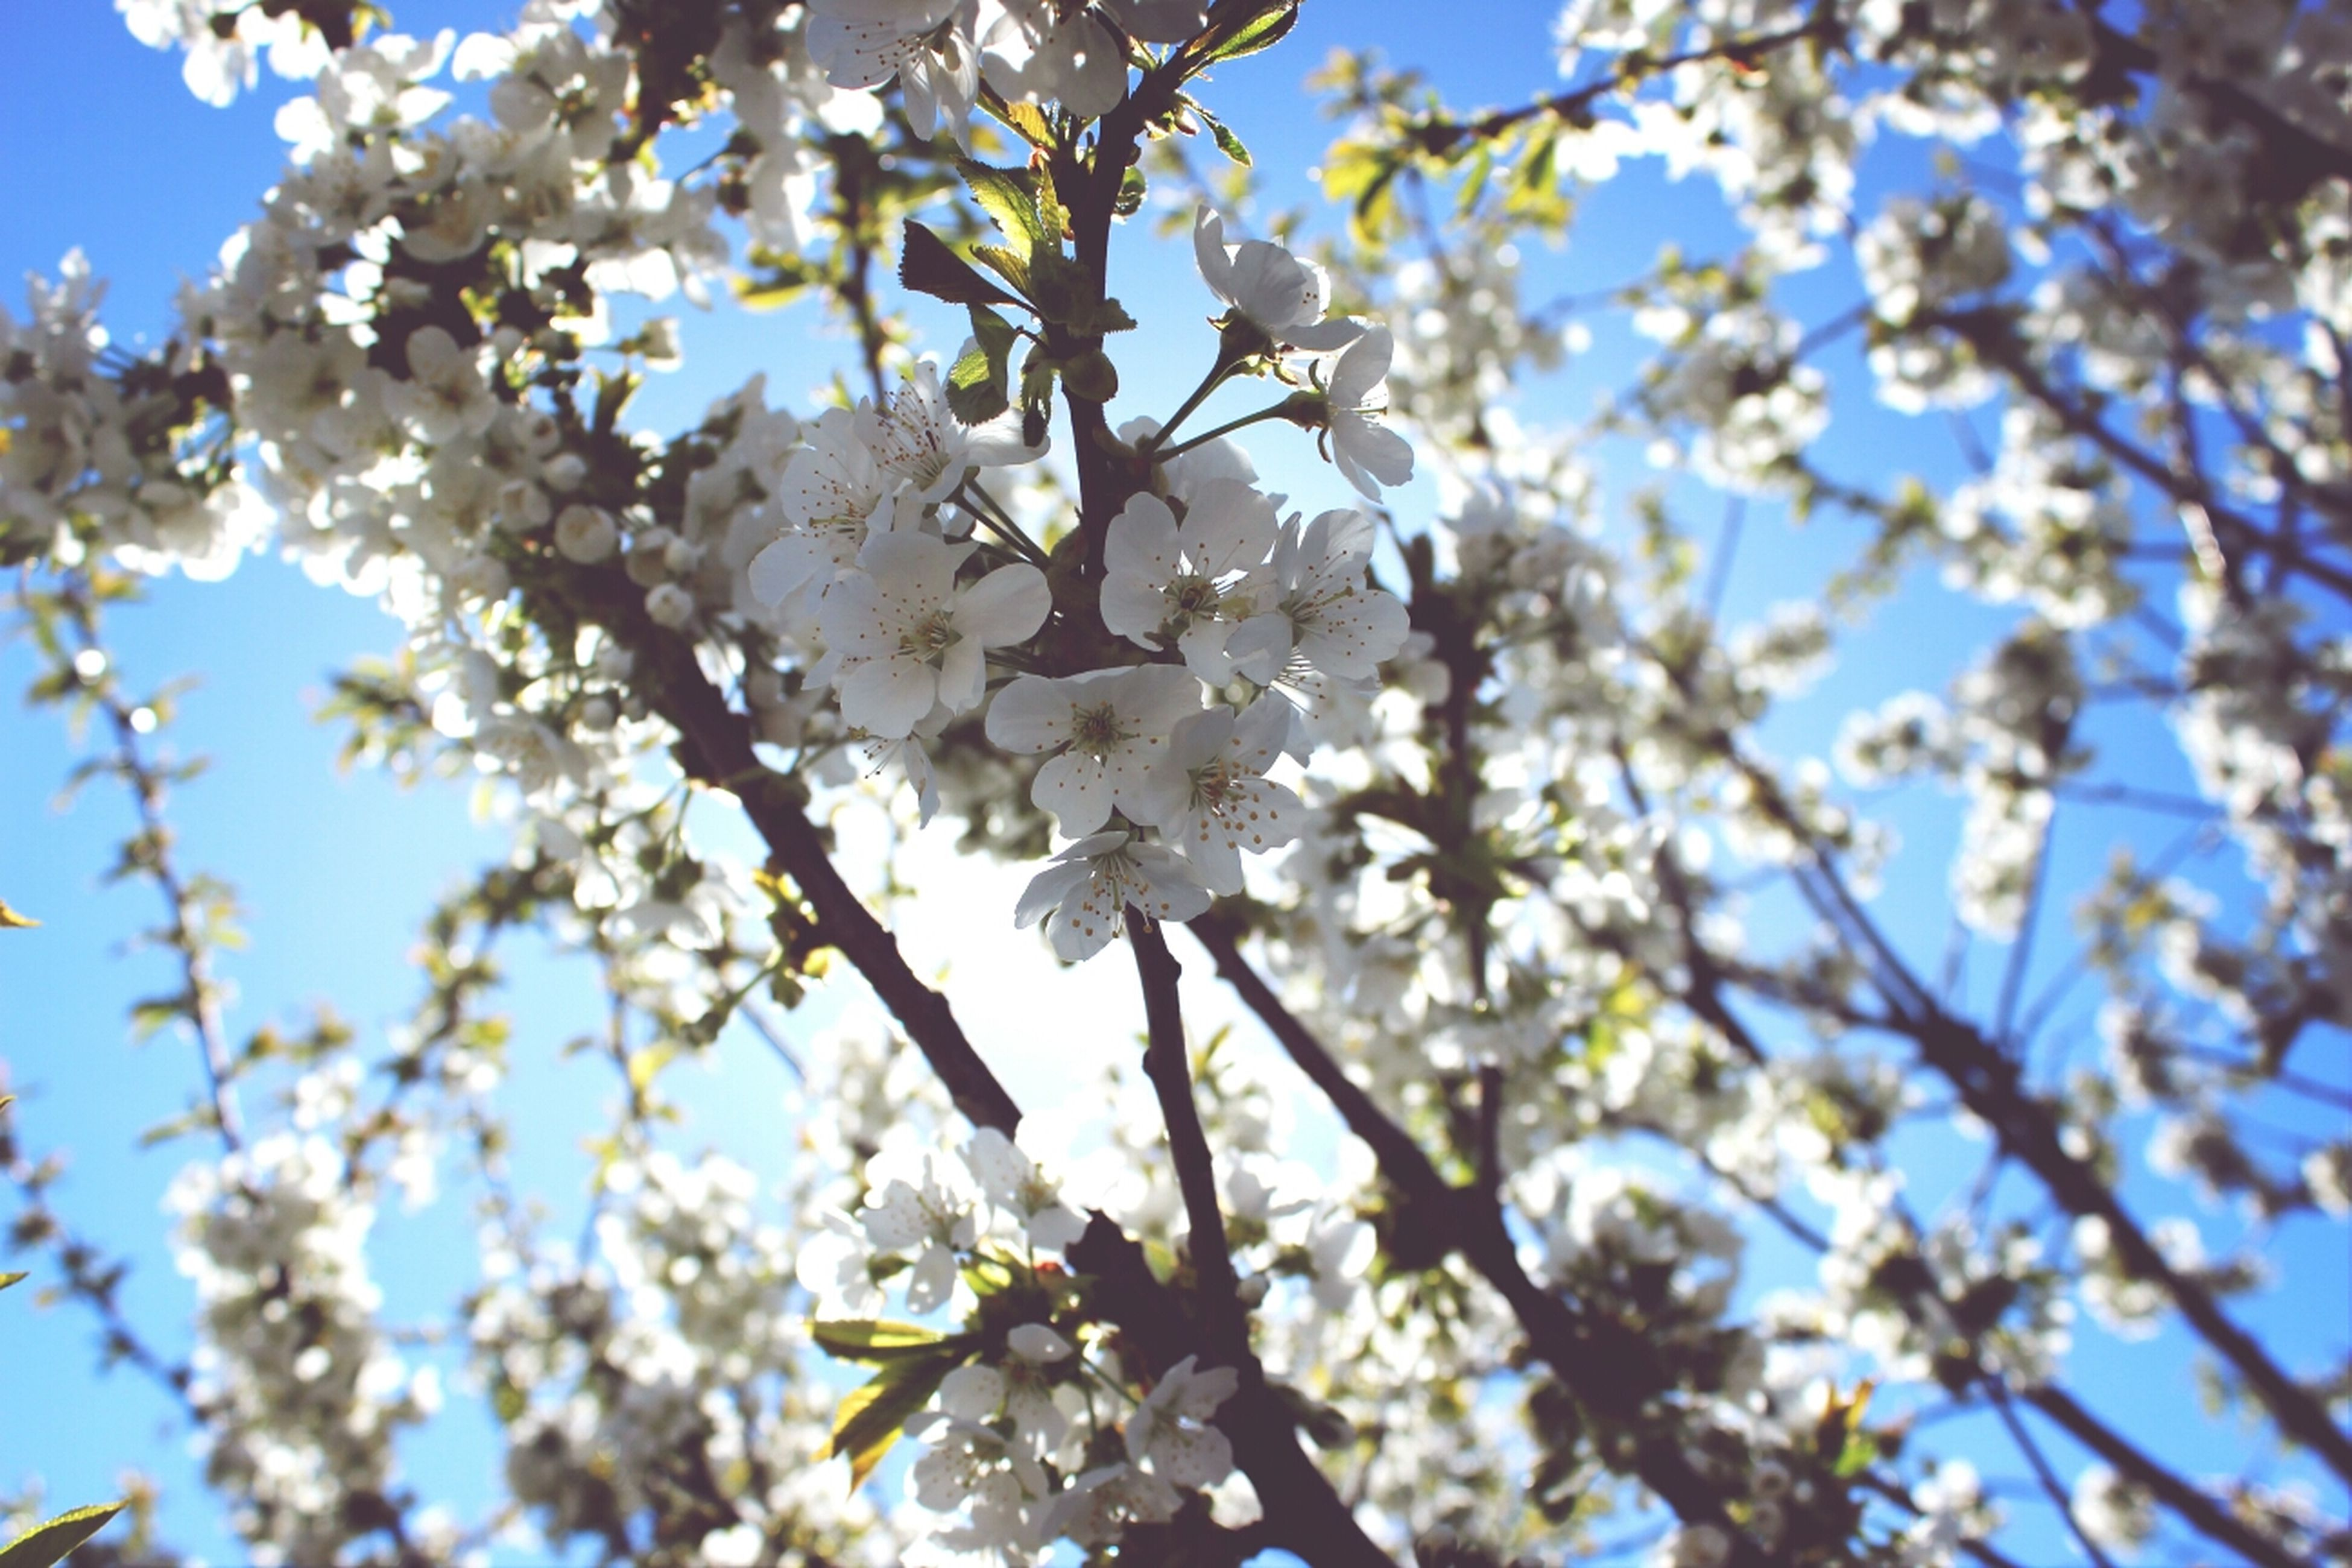 flower, branch, tree, freshness, growth, low angle view, cherry blossom, blossom, fragility, beauty in nature, cherry tree, nature, white color, springtime, fruit tree, apple tree, in bloom, blooming, twig, apple blossom